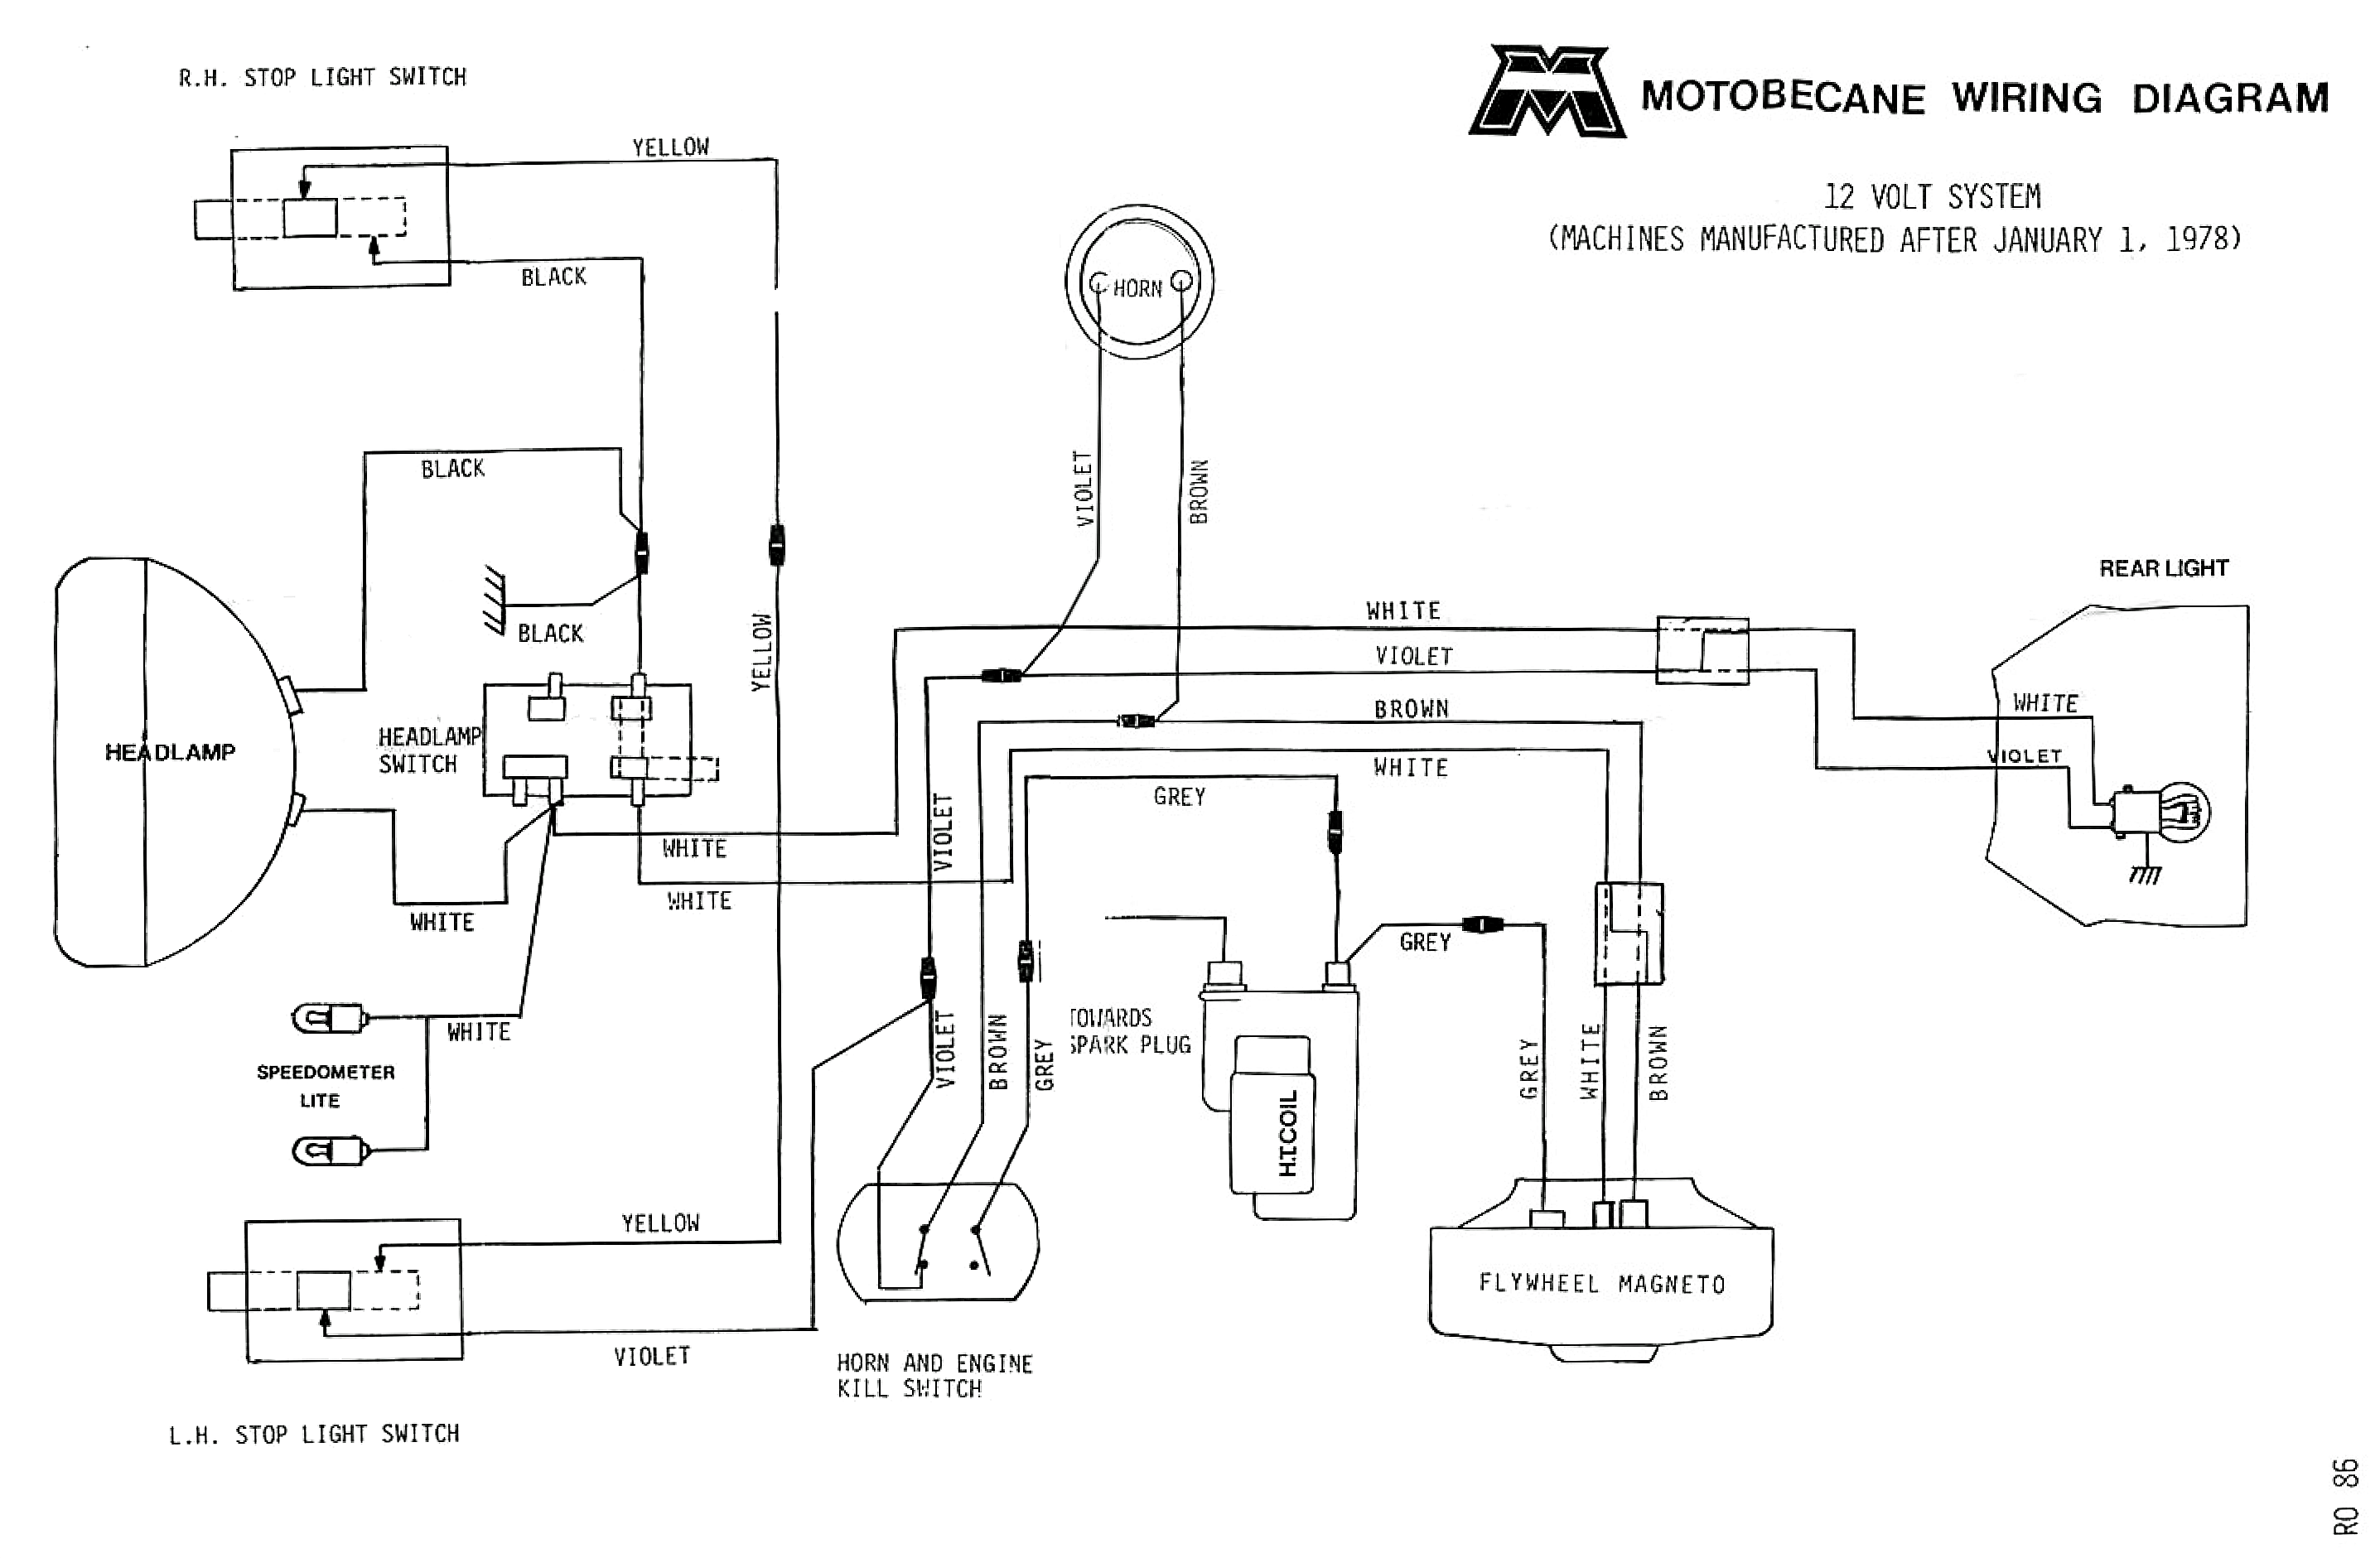 wiring circuits diagrams boiler diagram with zone valves motobecane moped wiki